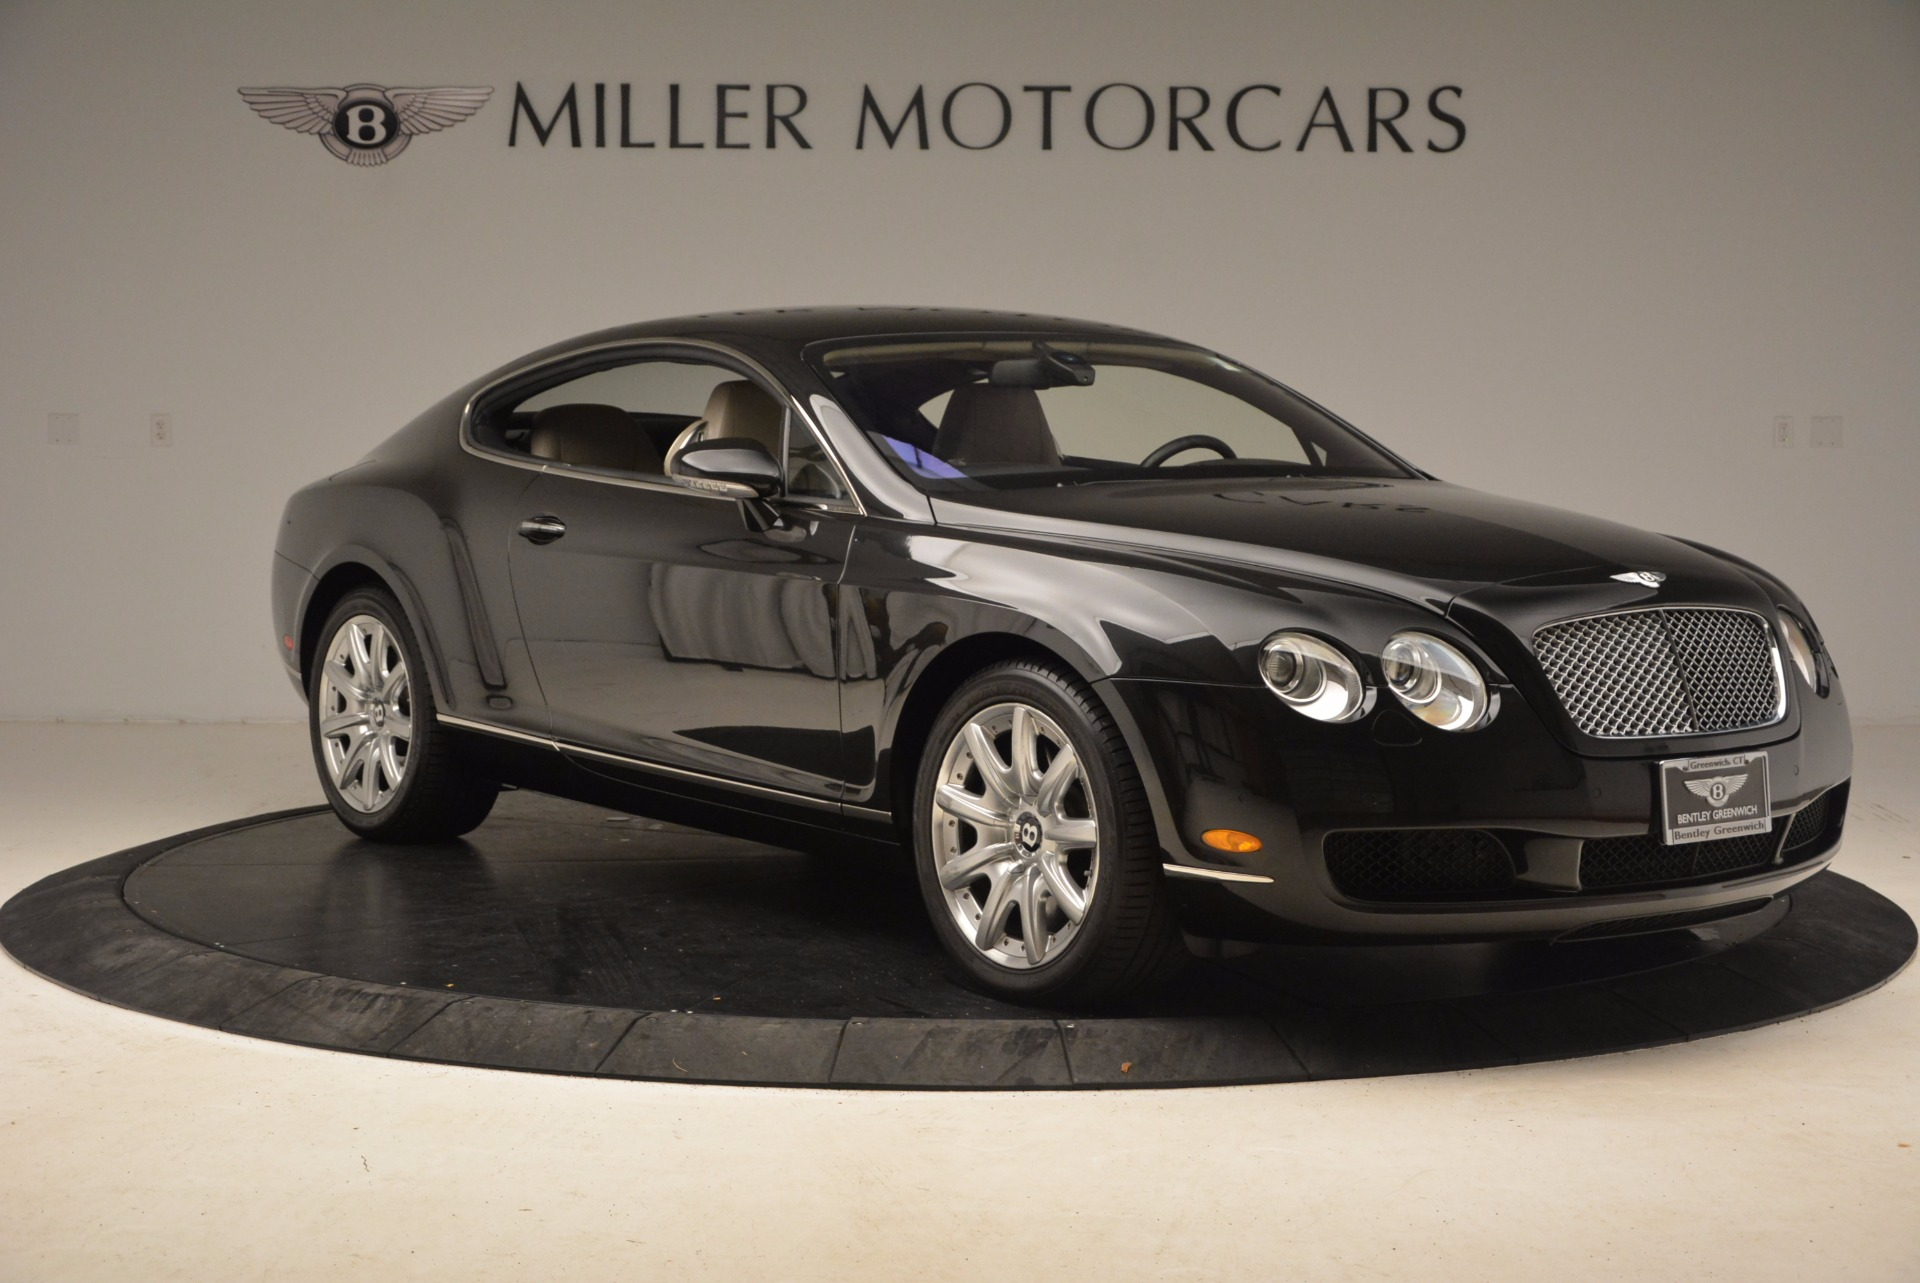 Used 2005 Bentley Continental GT W12 For Sale In Greenwich, CT 1677_p11